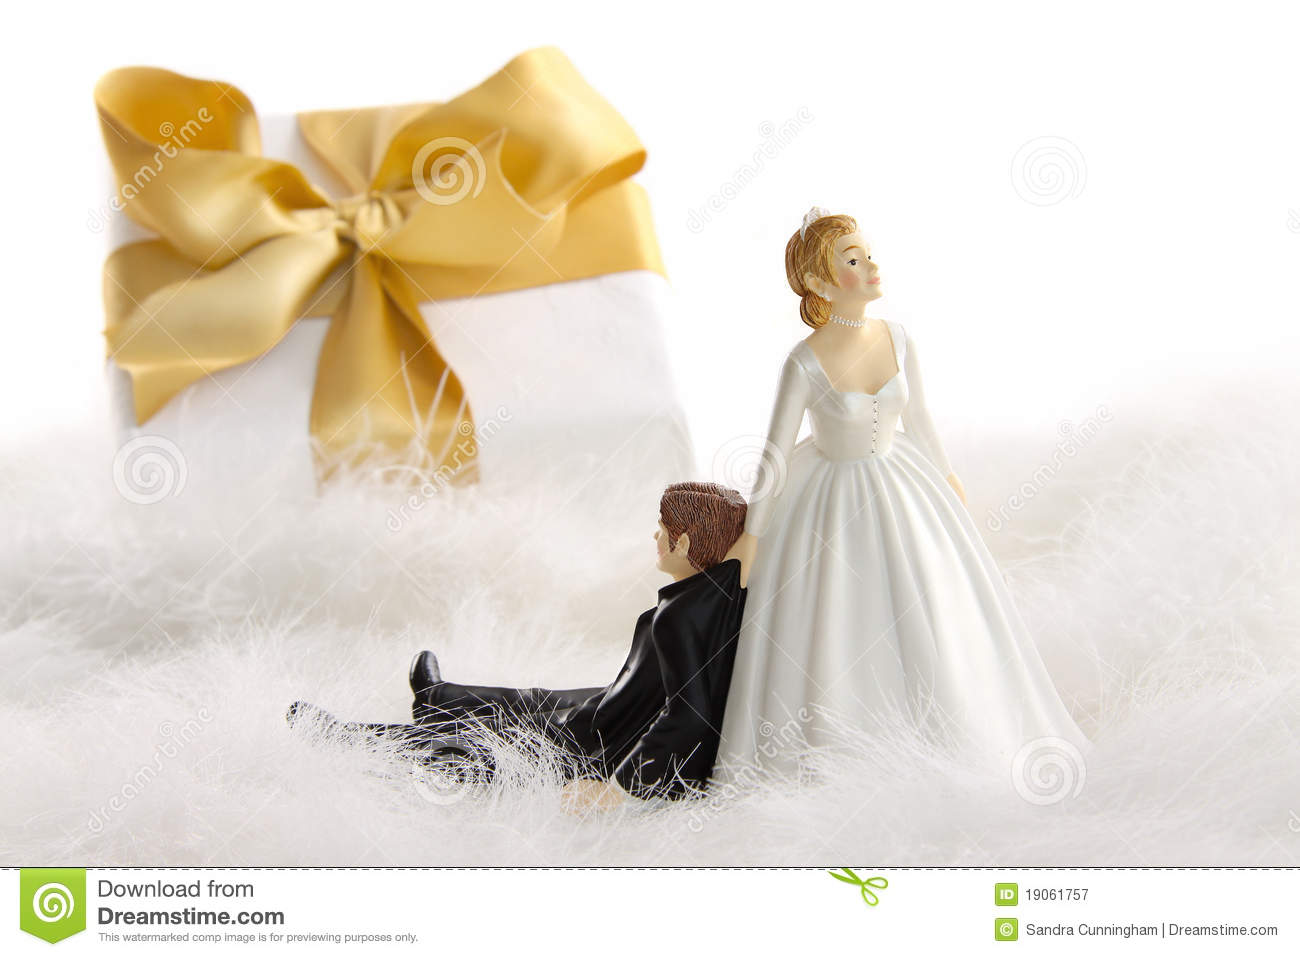 Wedding Statue Gifts: Wedding Cake Figurines With Gift On White Royalty Free